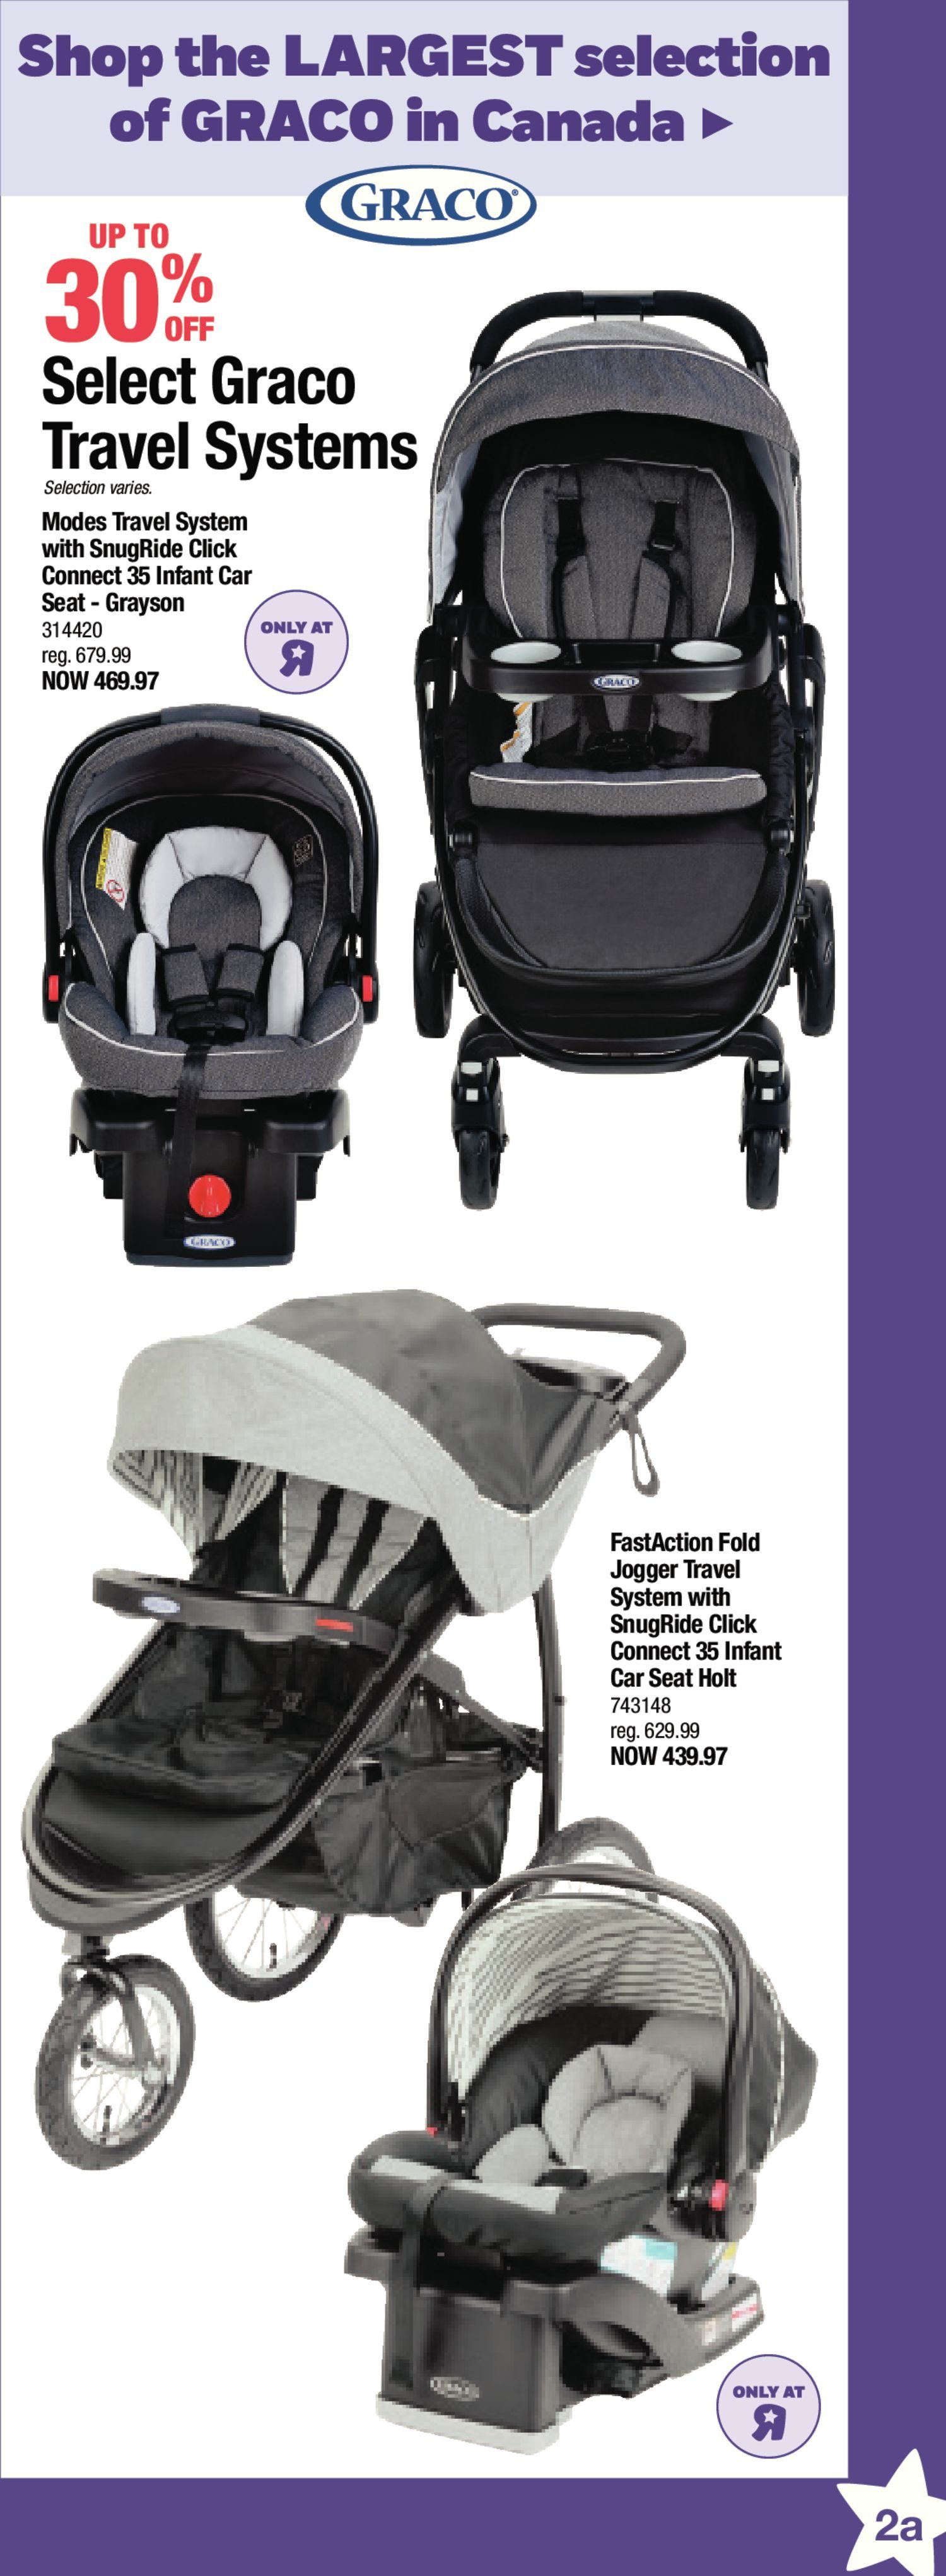 Classy Babies R Us Weekly Flyer Boxing Week Dec Babies R Us Weekly Flyer Boxing Week Dec Graco Modes Click Connect Travel System Reviews Graco Modes Click Connect Travel System Snugride 35 Car Seat baby Graco Modes Click Connect Travel System